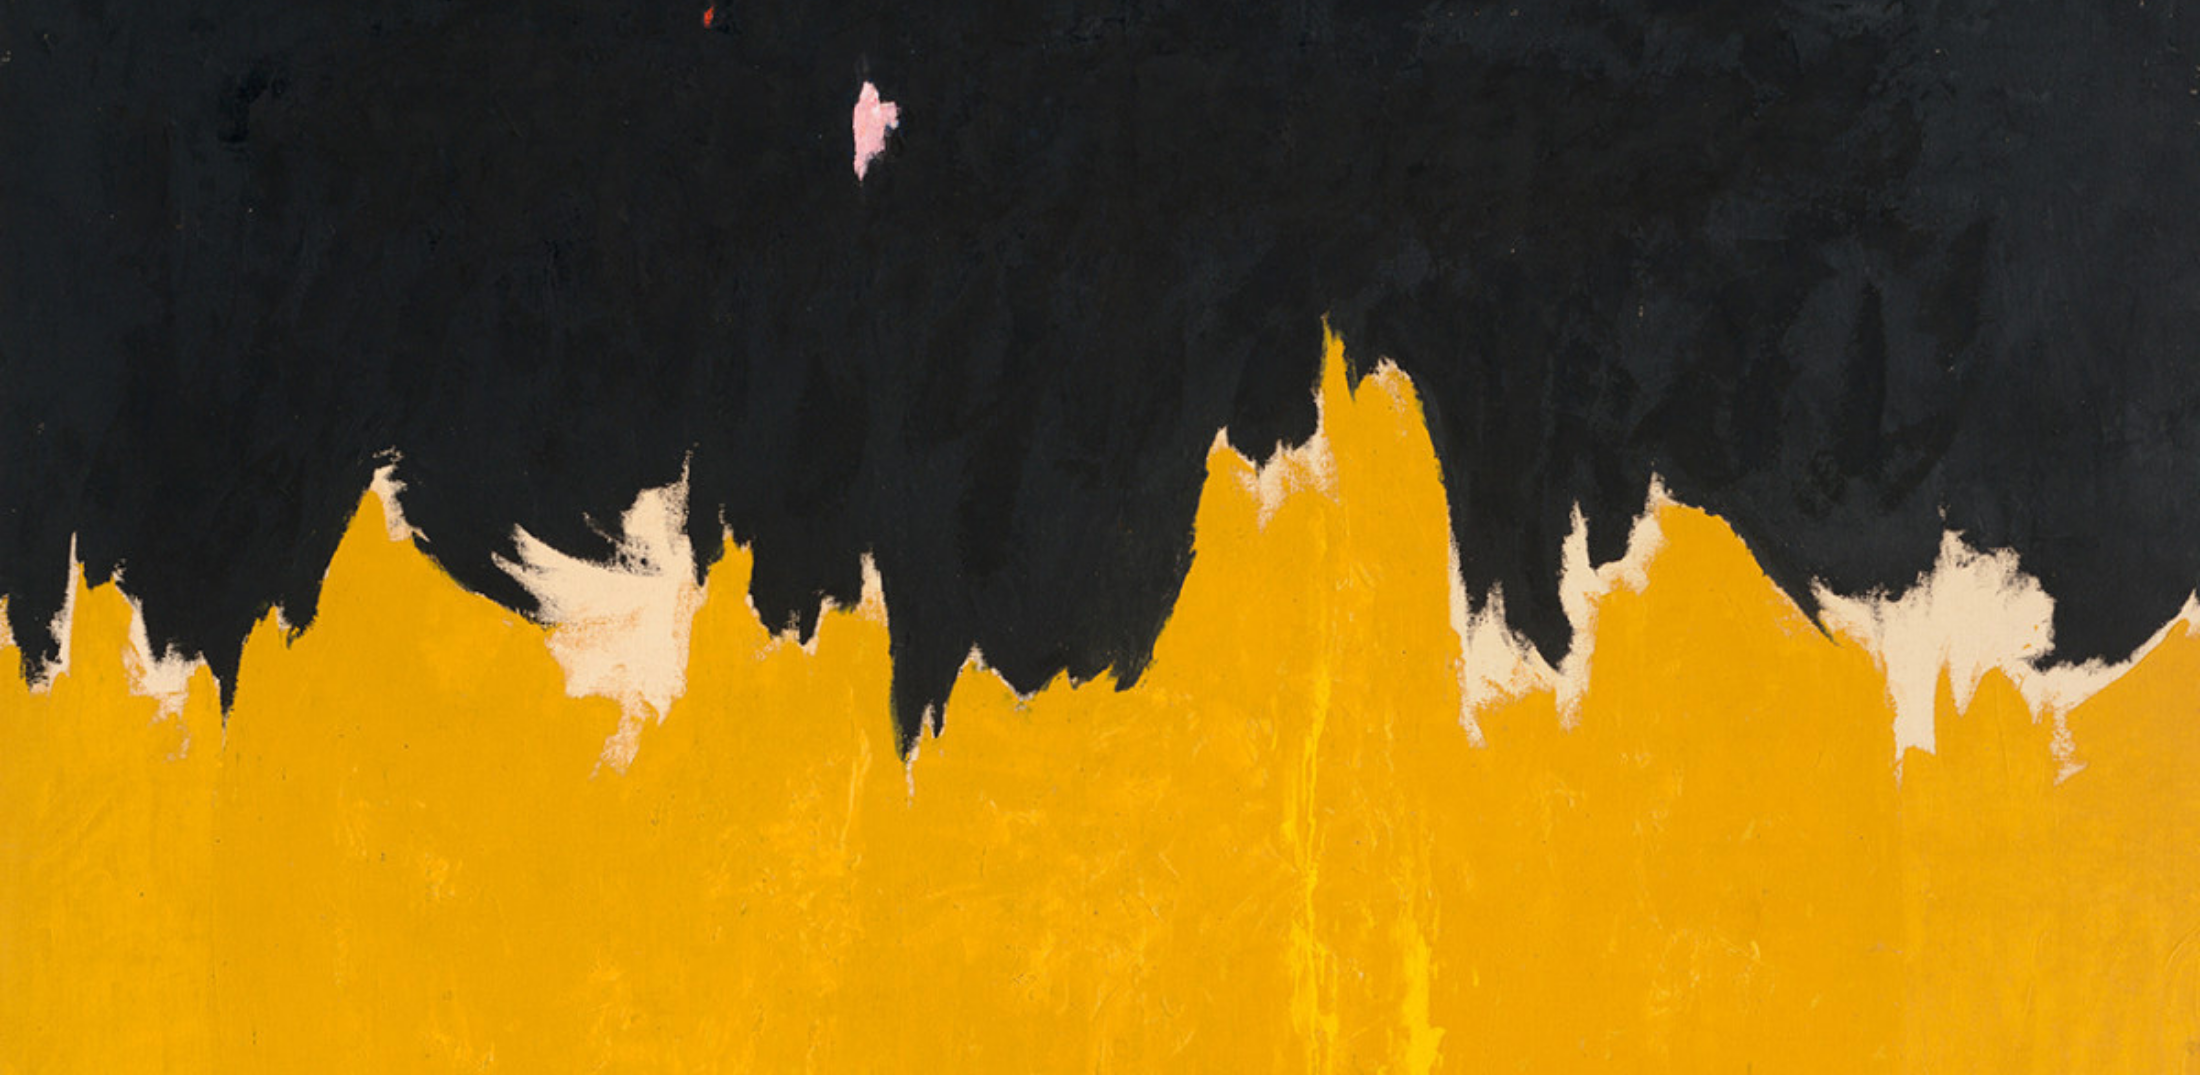 Clyfford Still, PH-950 (1950), Abstract Expressionism_zvoura.gr (2)